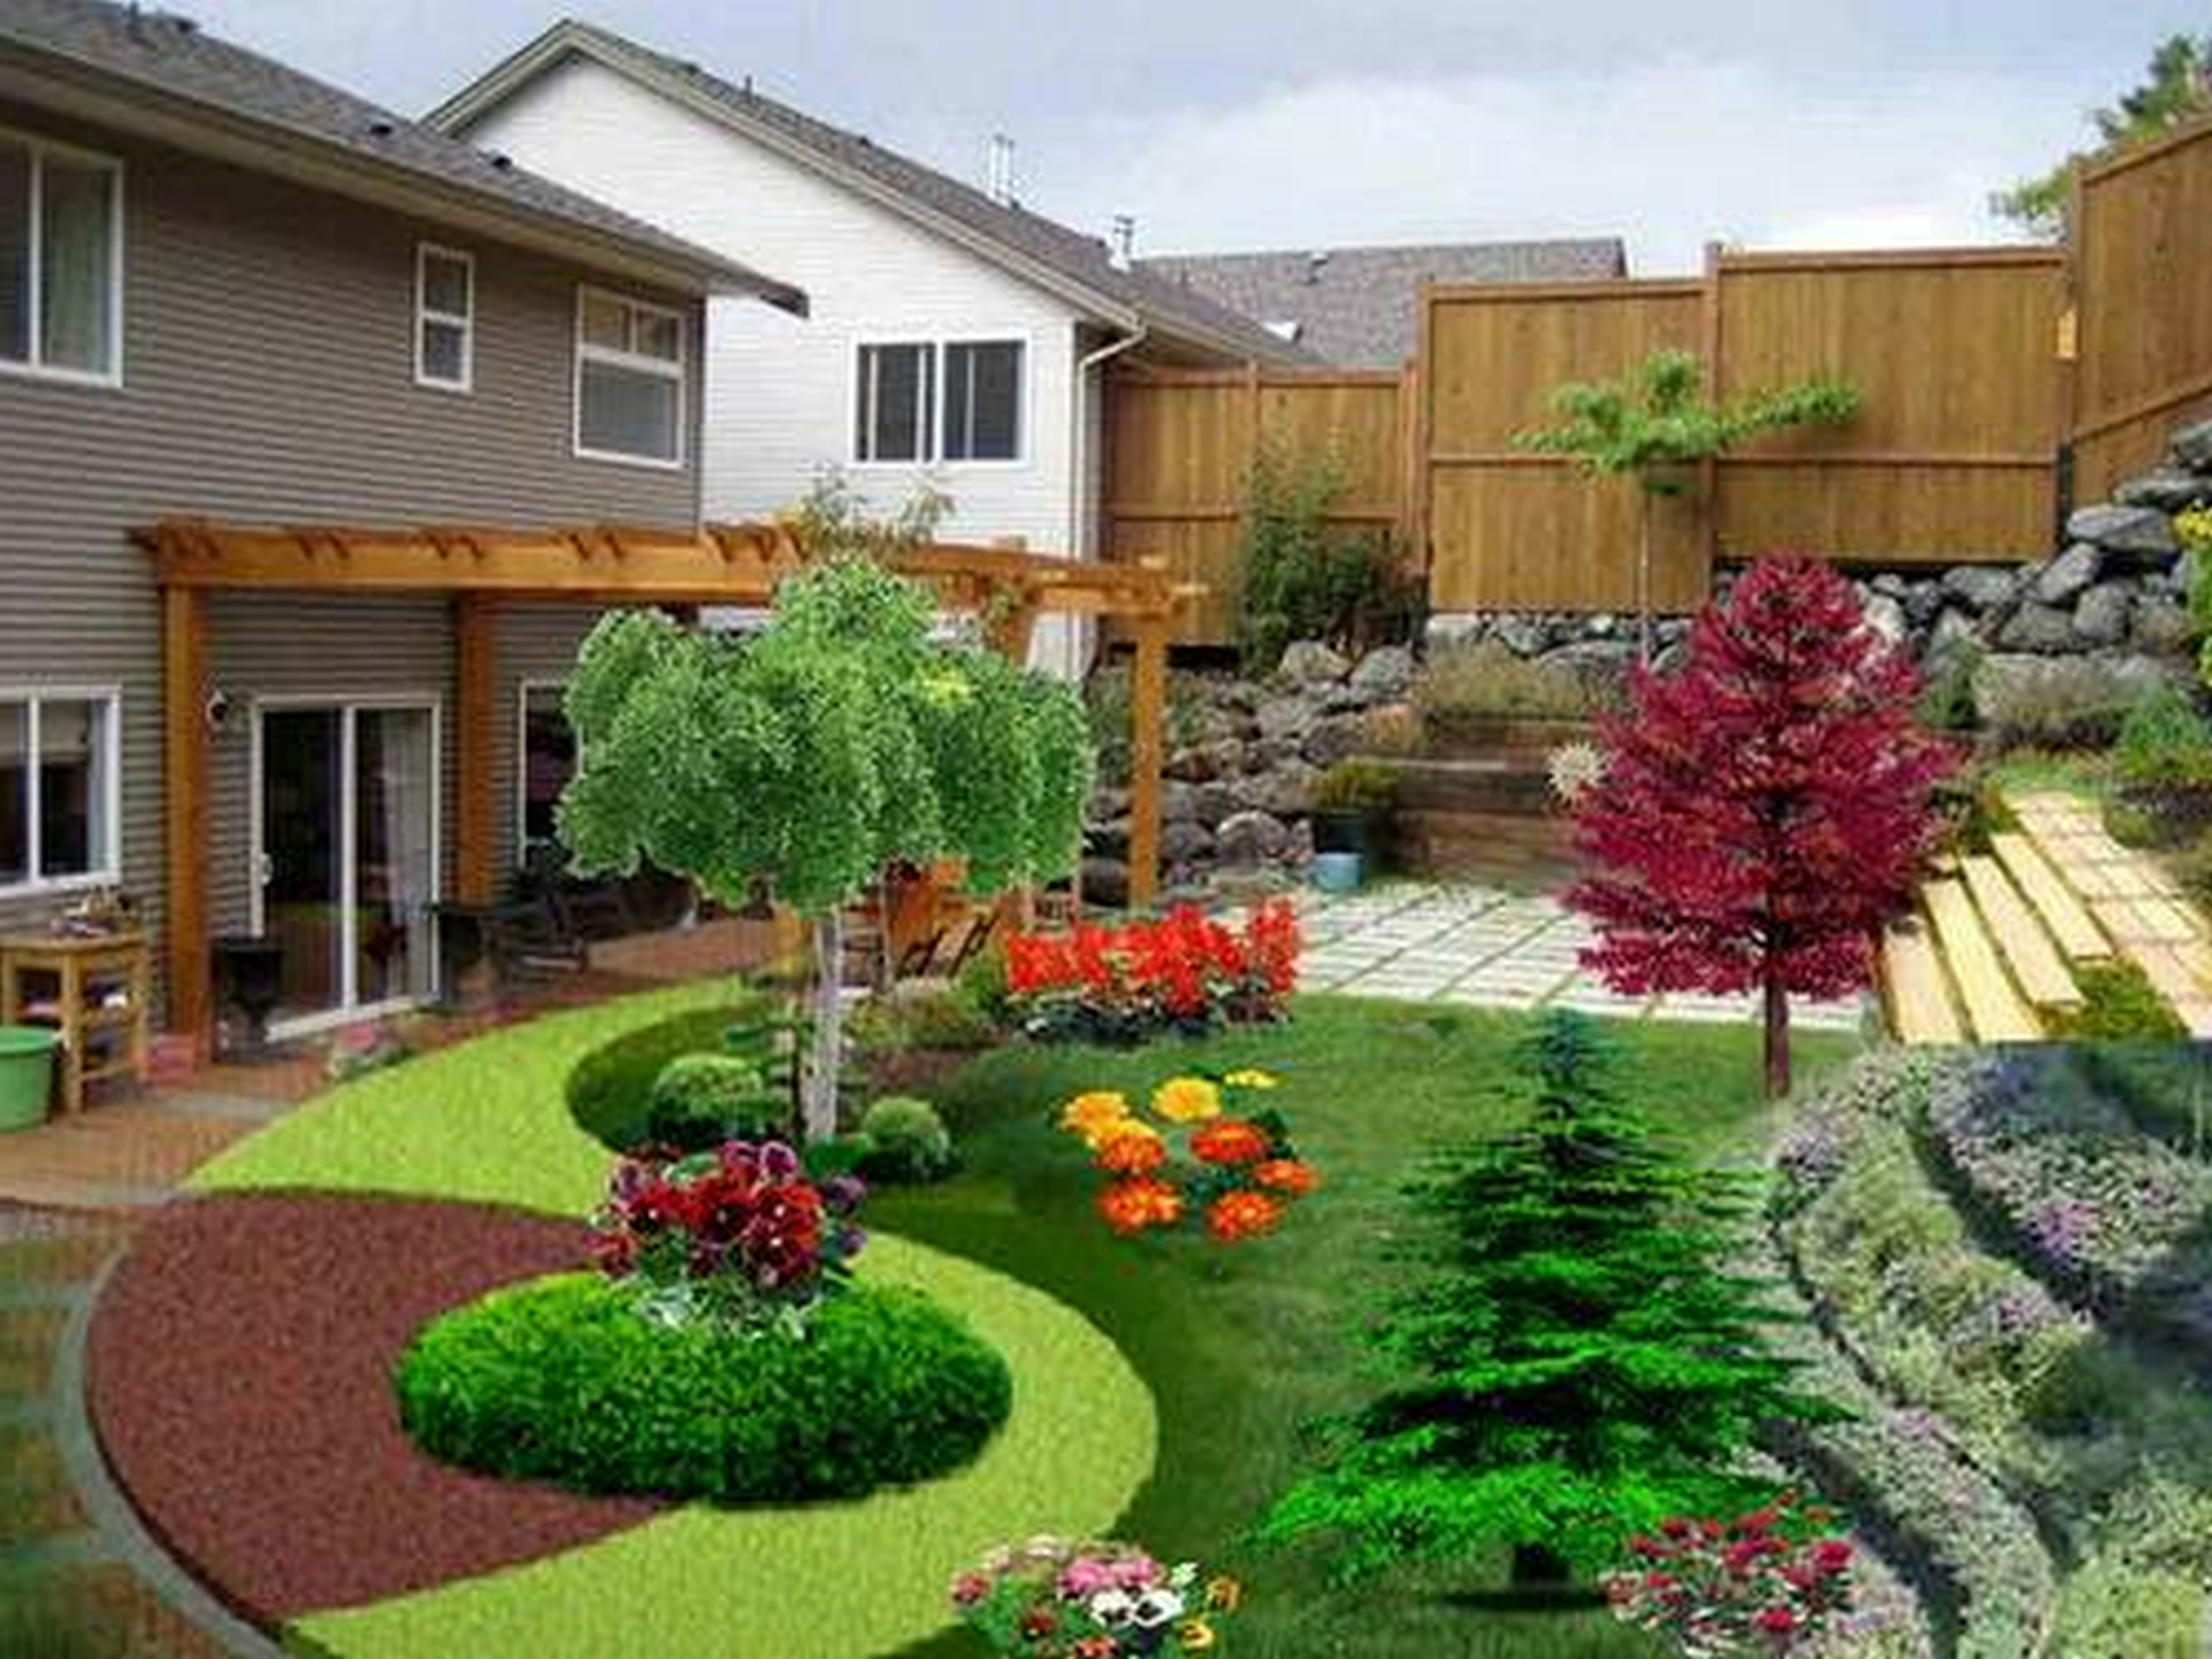 25 Beautiful Home Garden Designs Ideas Garden Design Home Garden Design Landscape Design